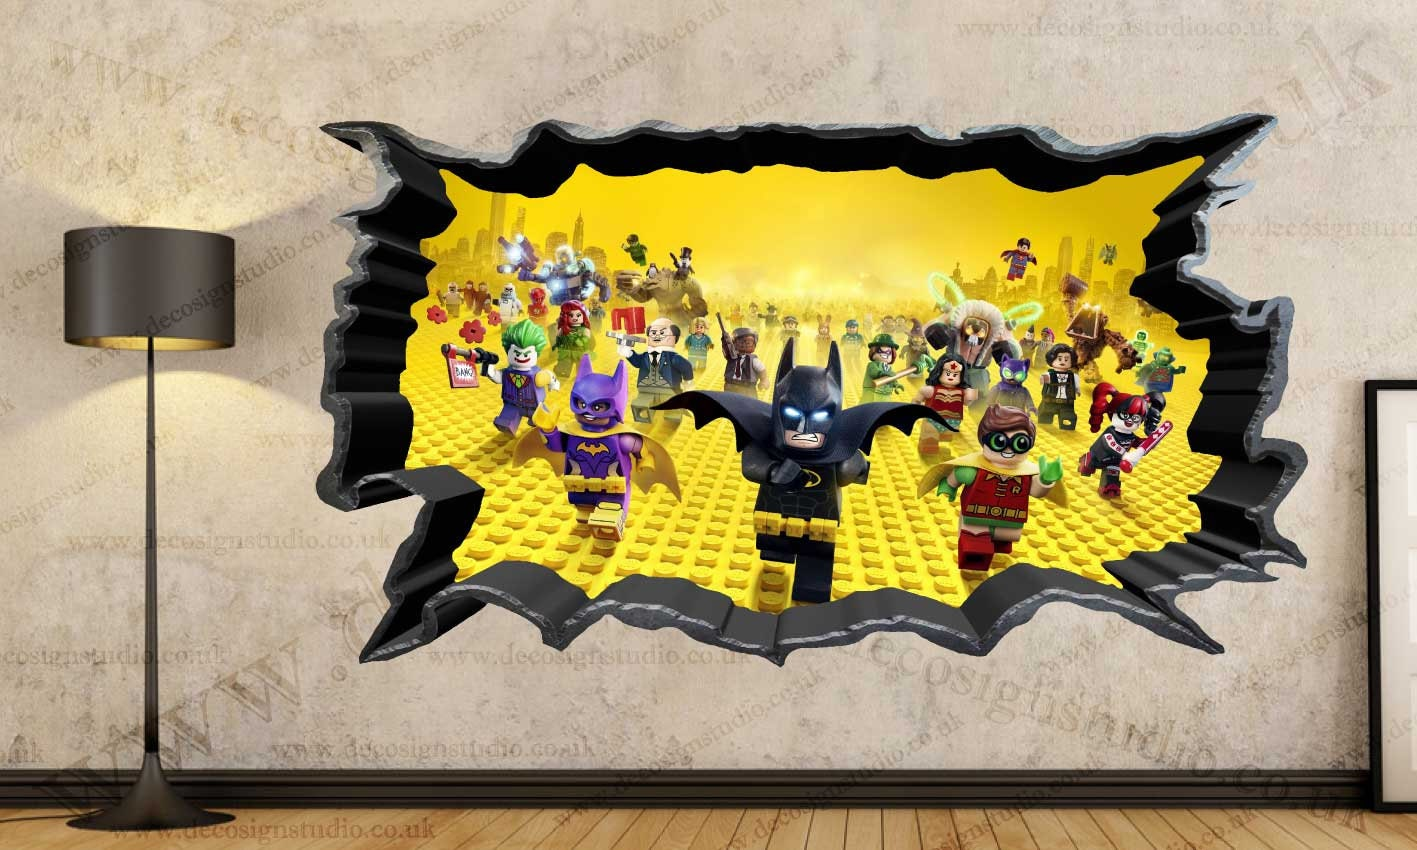 Superheroes Avengers The Lego 3D Cracked Wall Effect Wall | Etsy